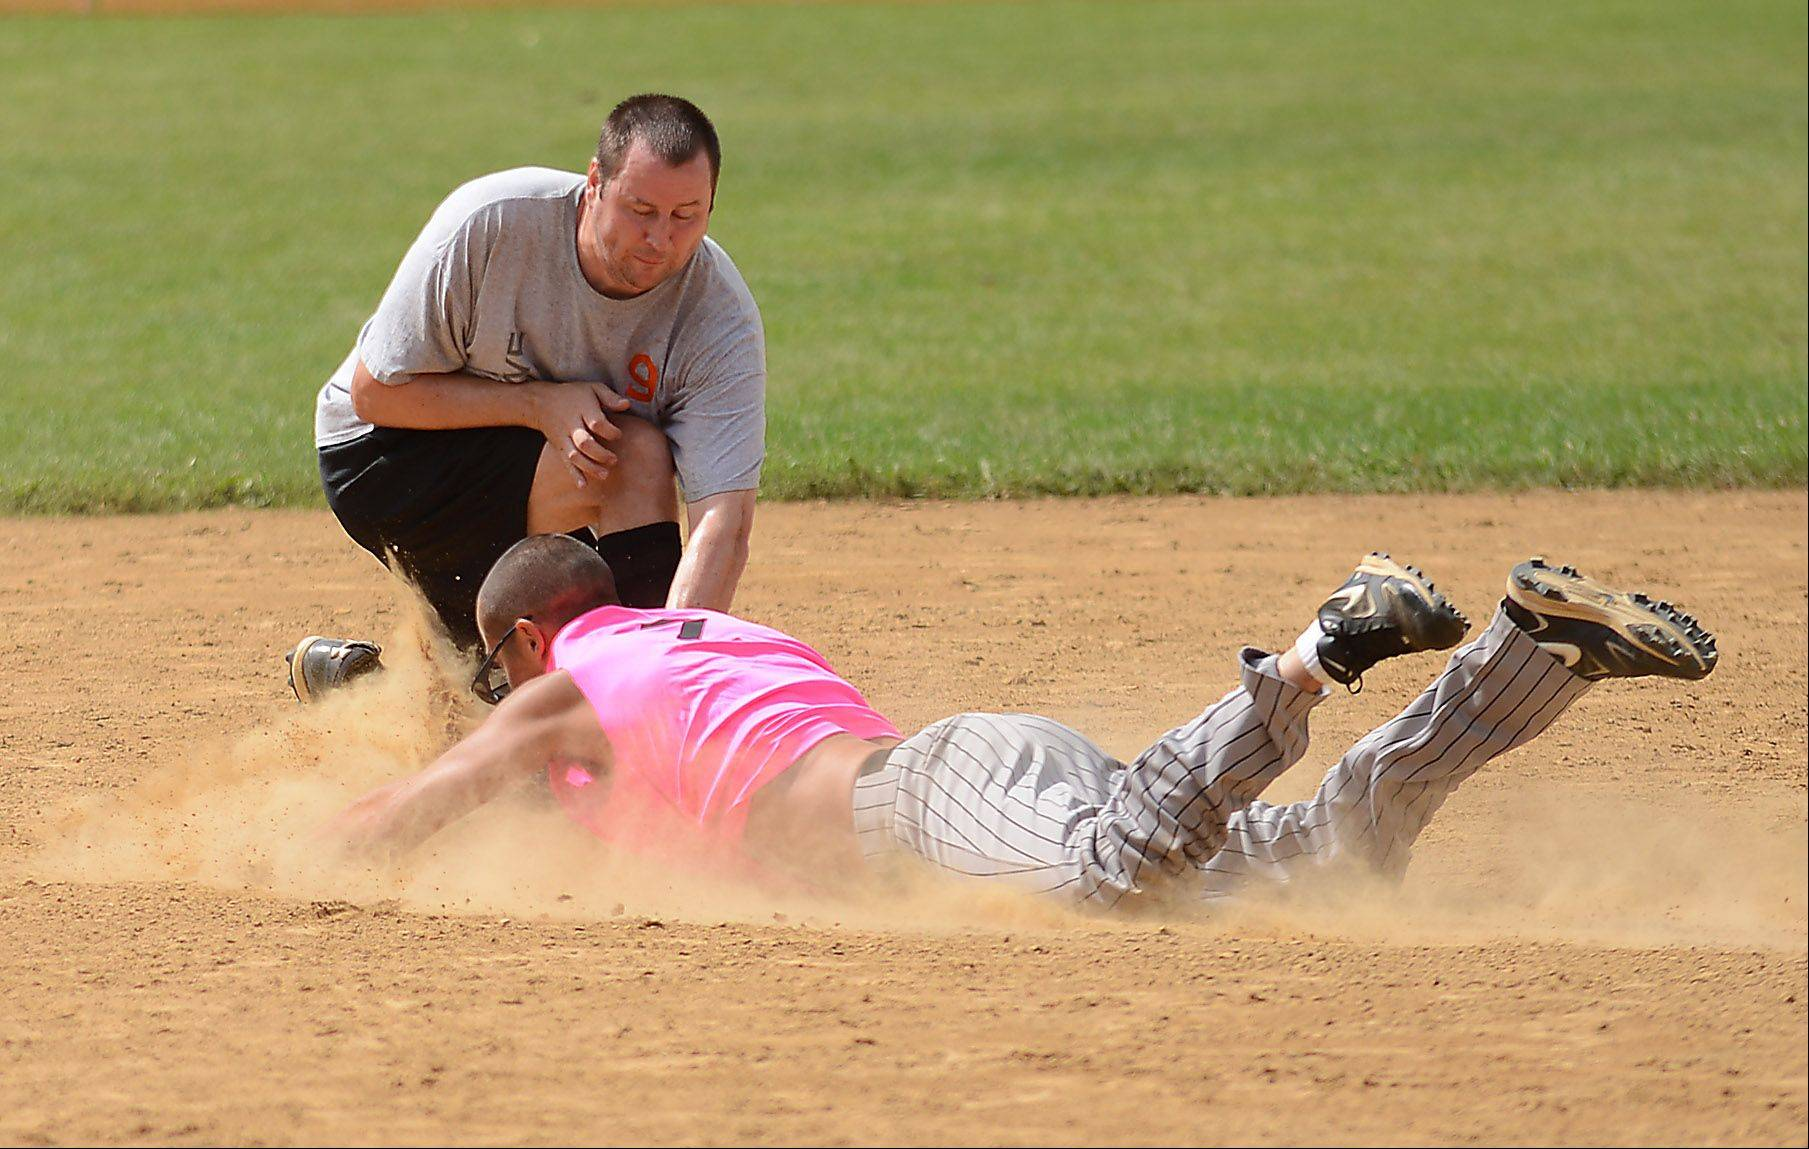 Tyler Burke of the World Famous Pizza team slides safely into second base in front of the tag of Mike Boehnke of R3 Creative during the slow pitch softball tournament that wraps up Maple Park's annual Fun Fest Monday.